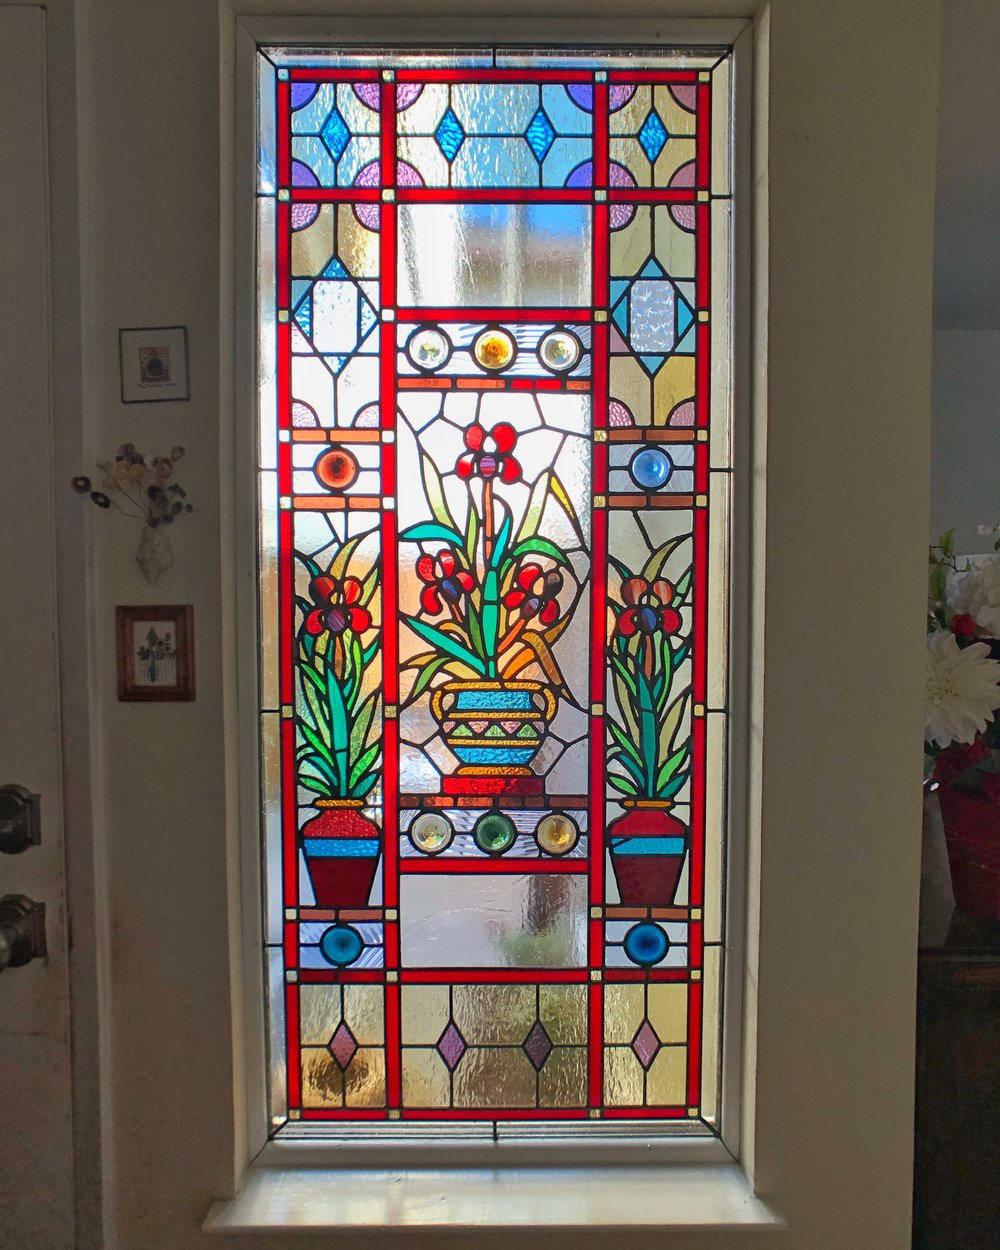 victorian era stained glass restoration british charm rondel floral before and after leaded glass legacy glass studios california front entry sidelight colorful custom glass repair front view.jpg